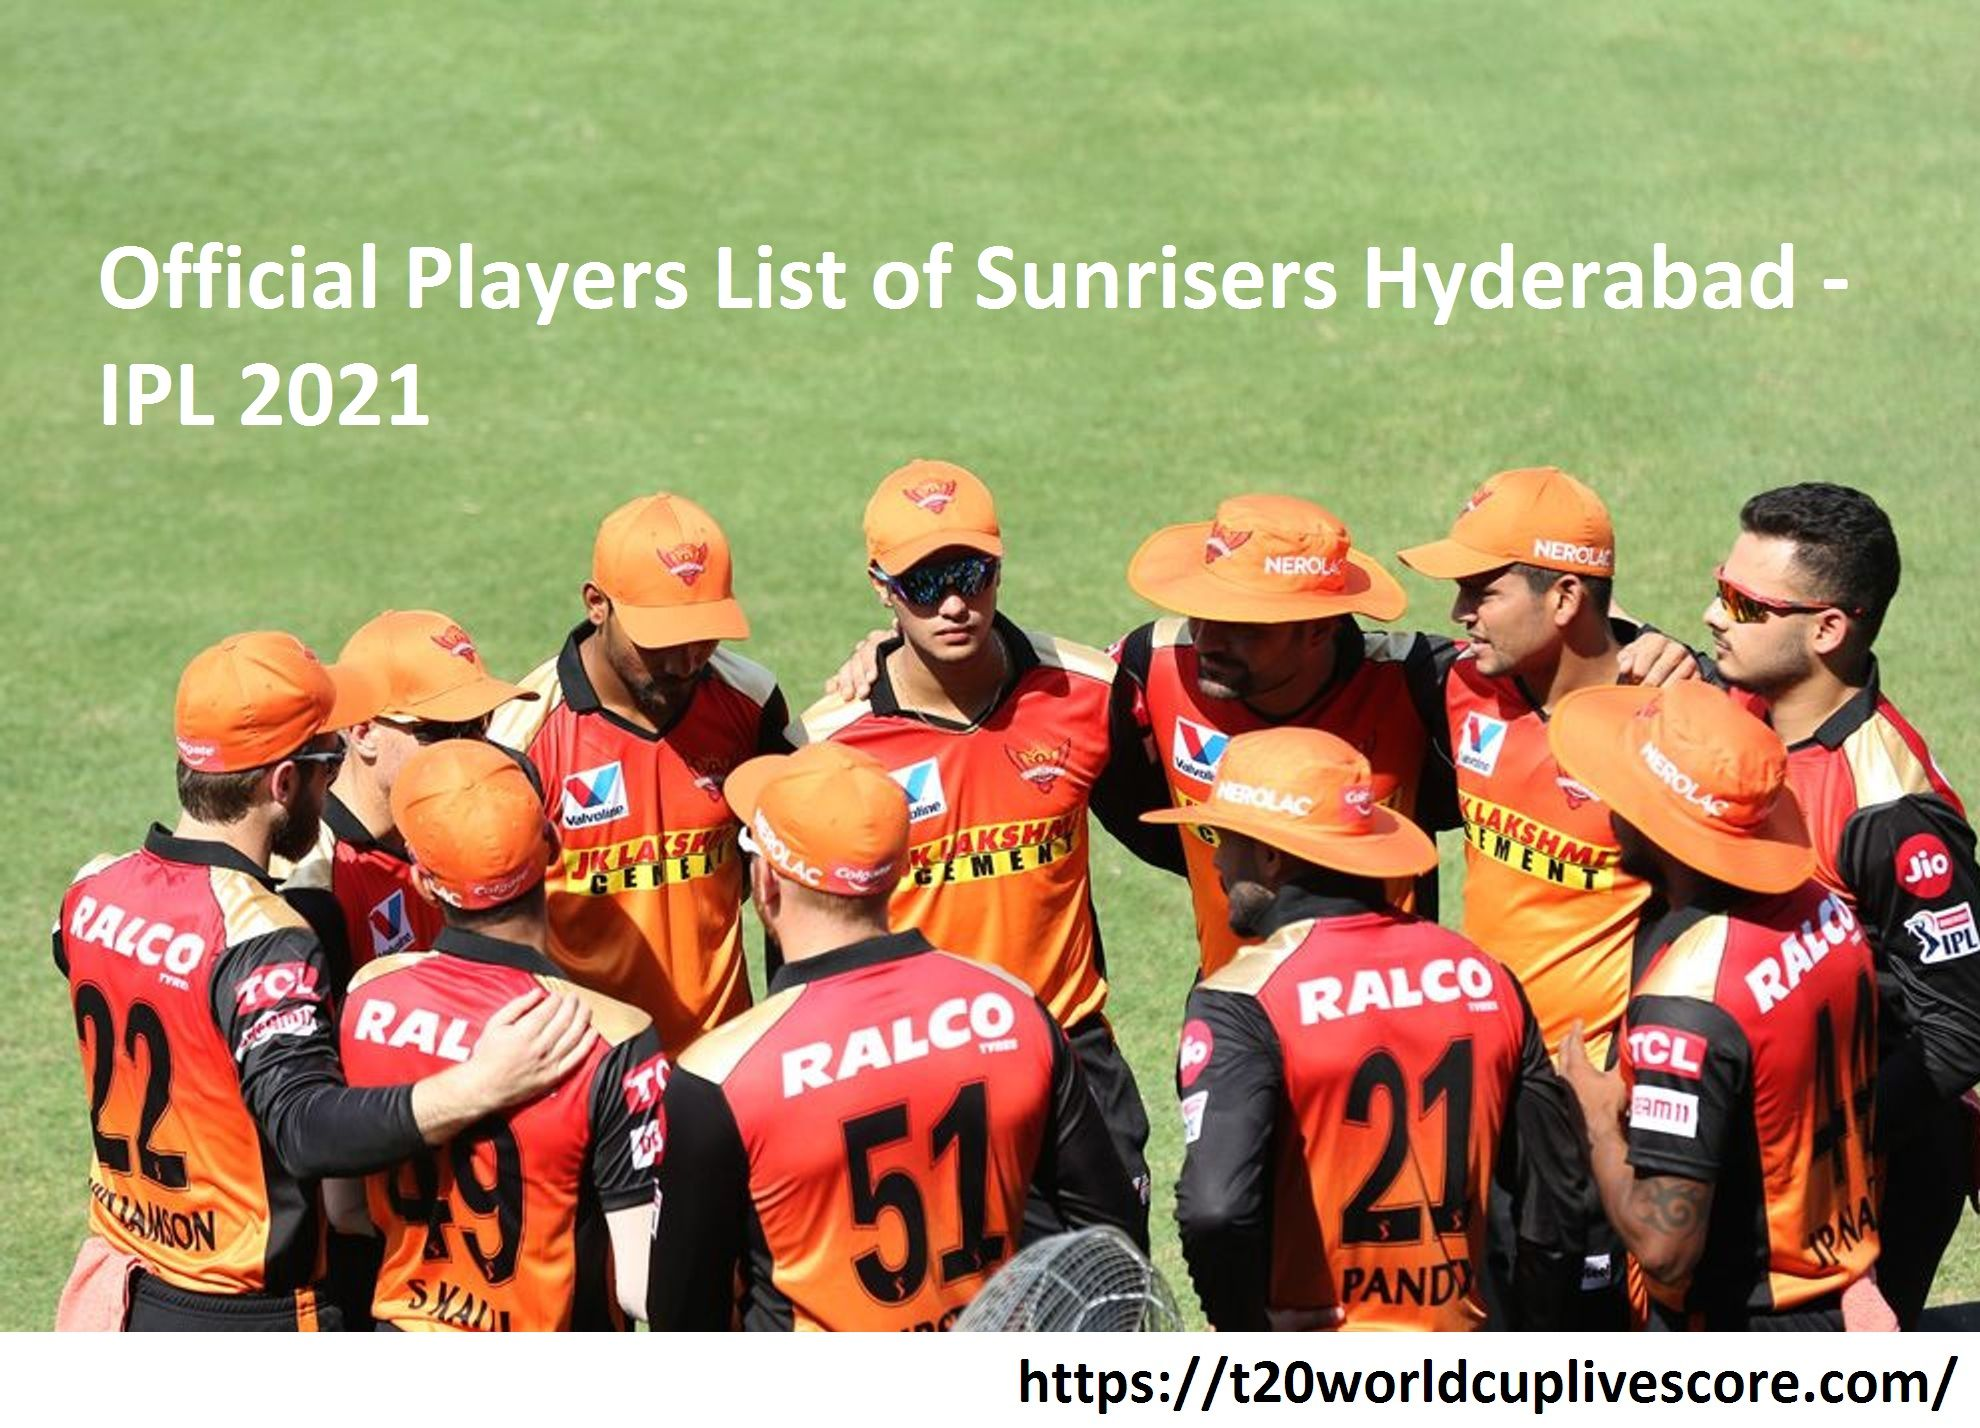 Official Players List of Sunrisers Hyderabad in IPL 2021